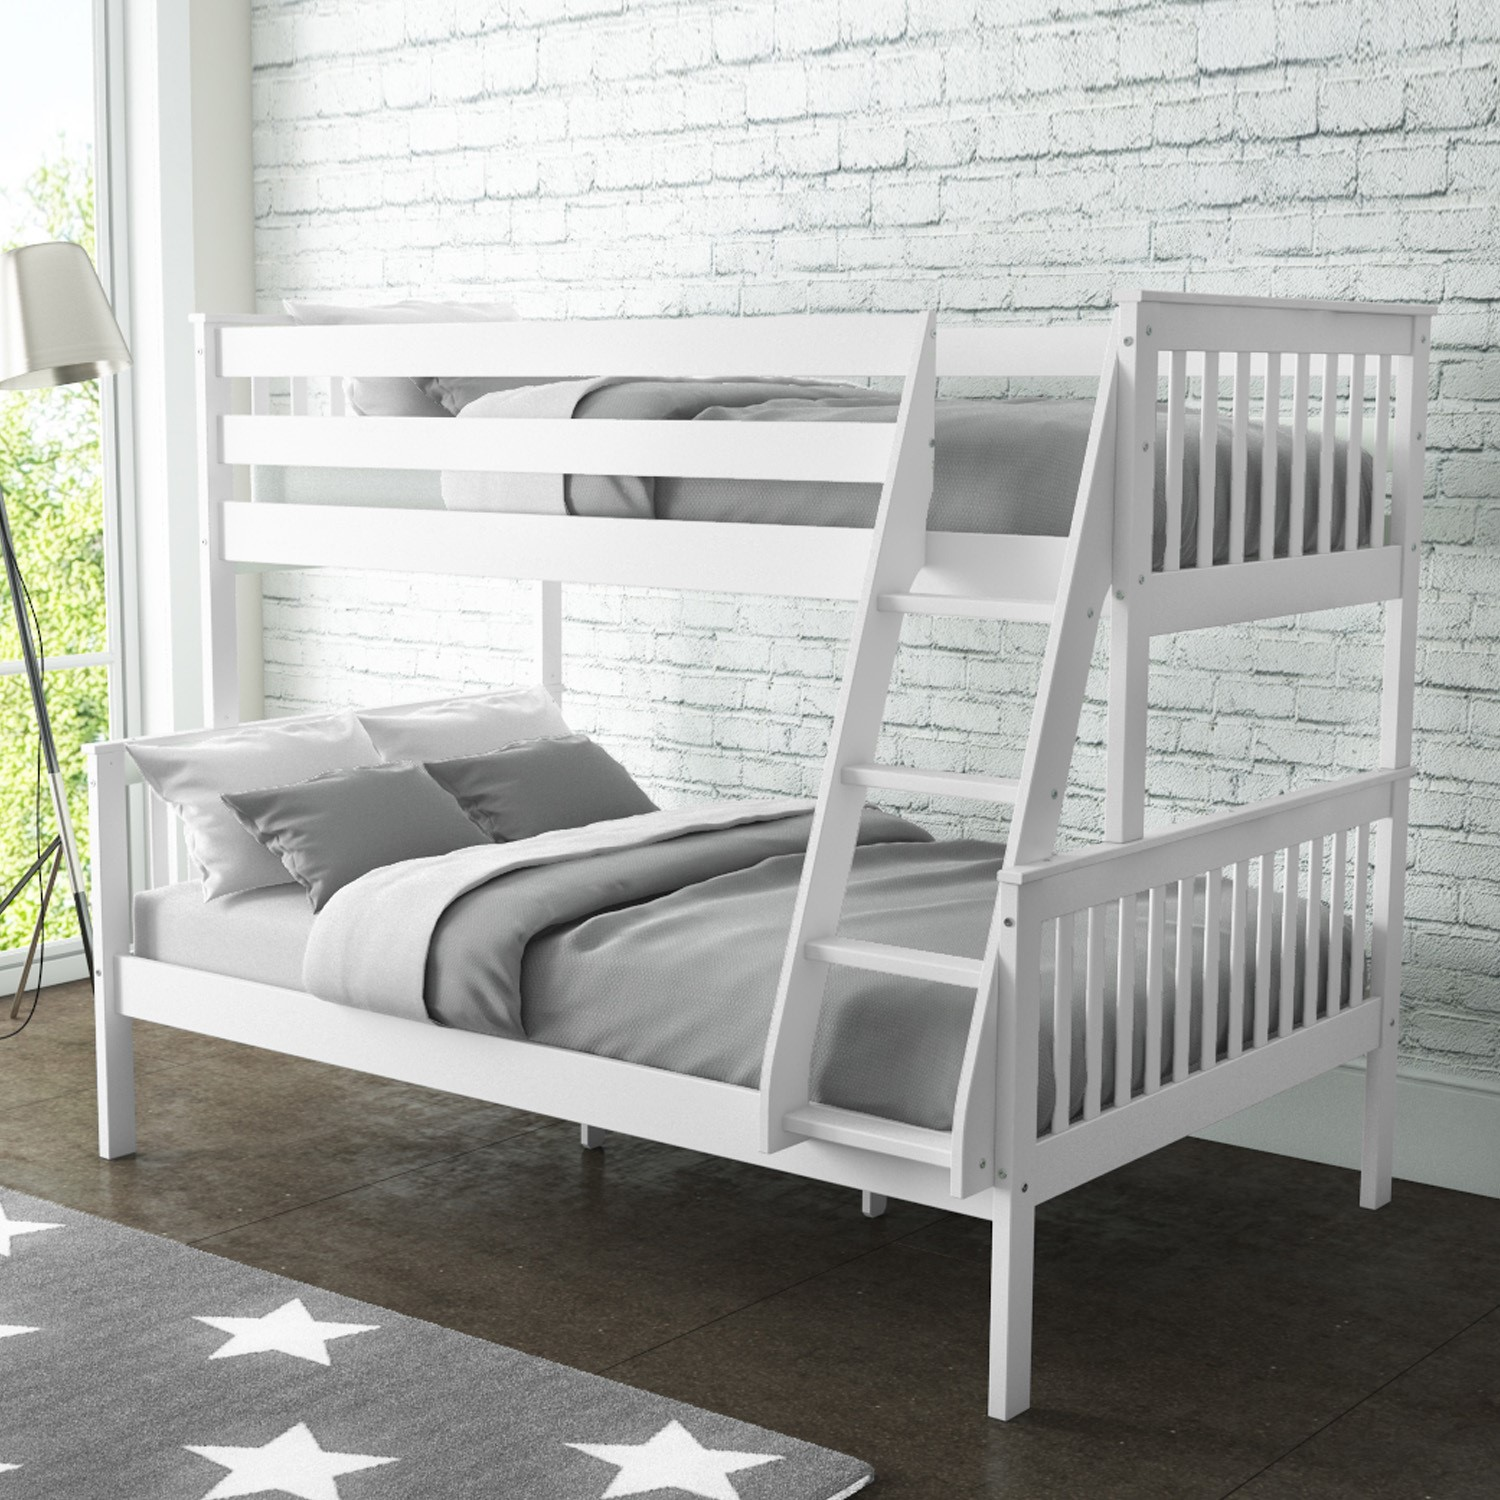 New High Quality Oxford Triple Bunk Bed In White Small